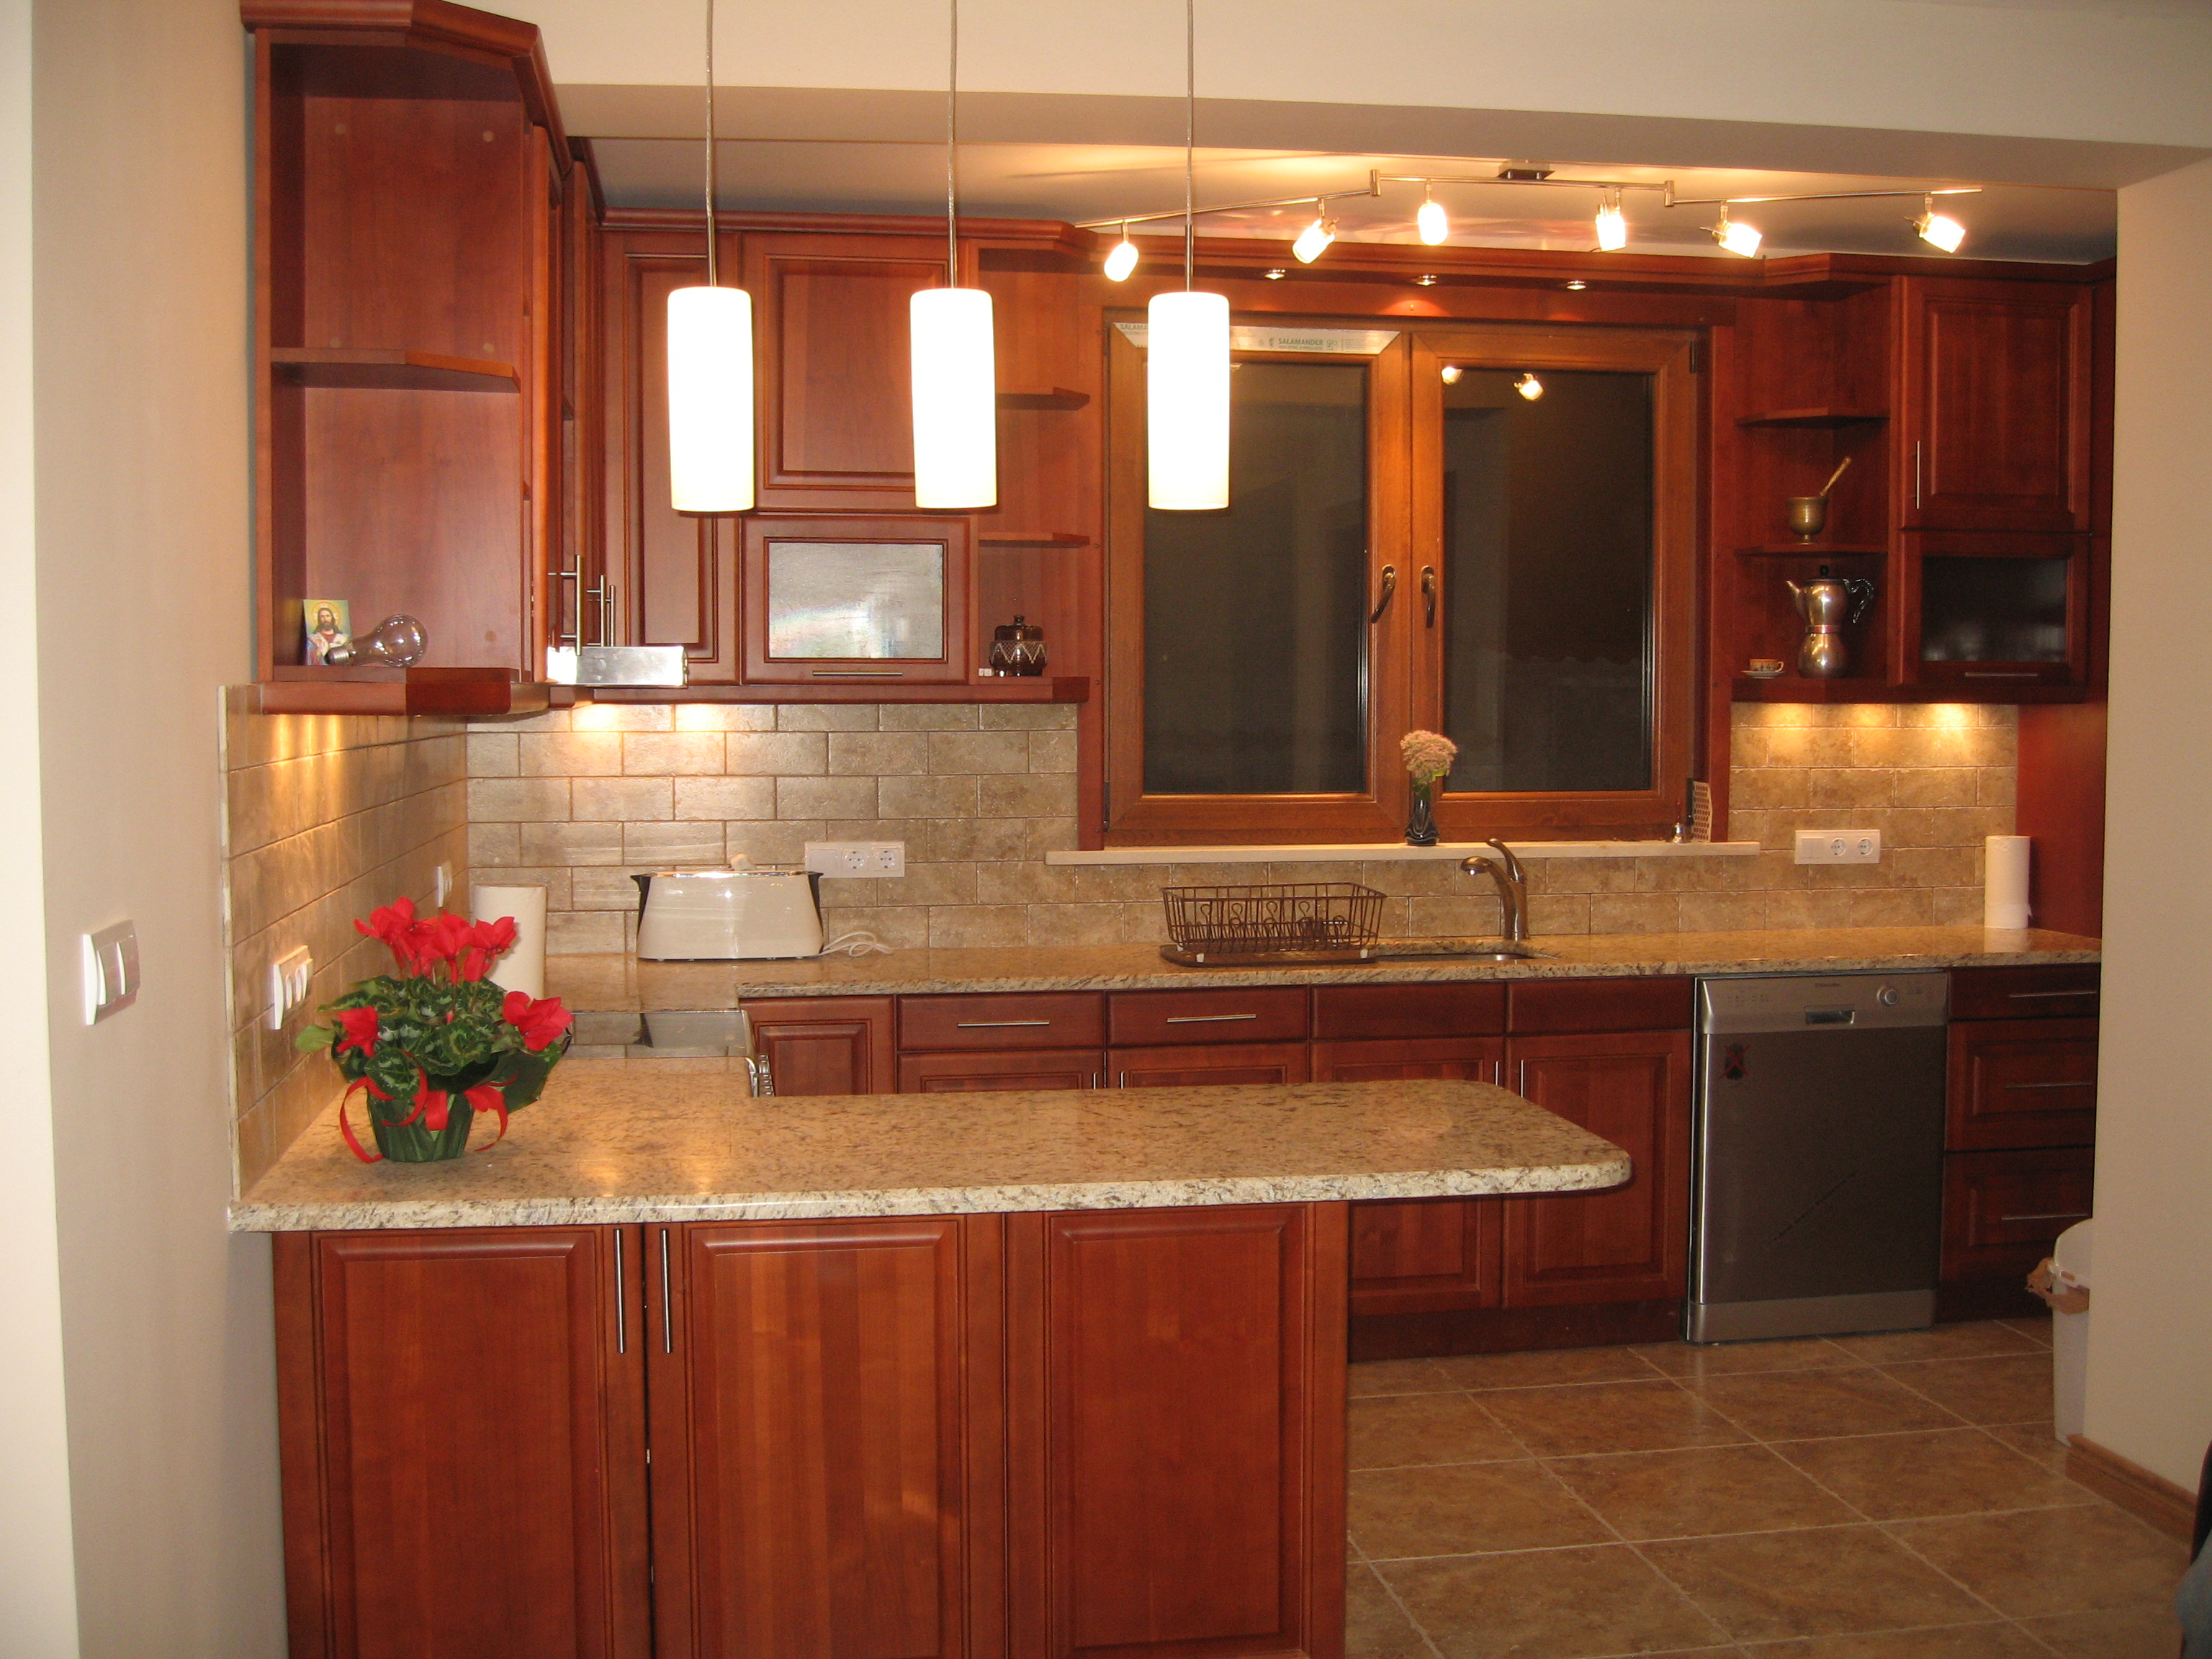 Bultra inc cherry finish for Bleached maple kitchen cabinets